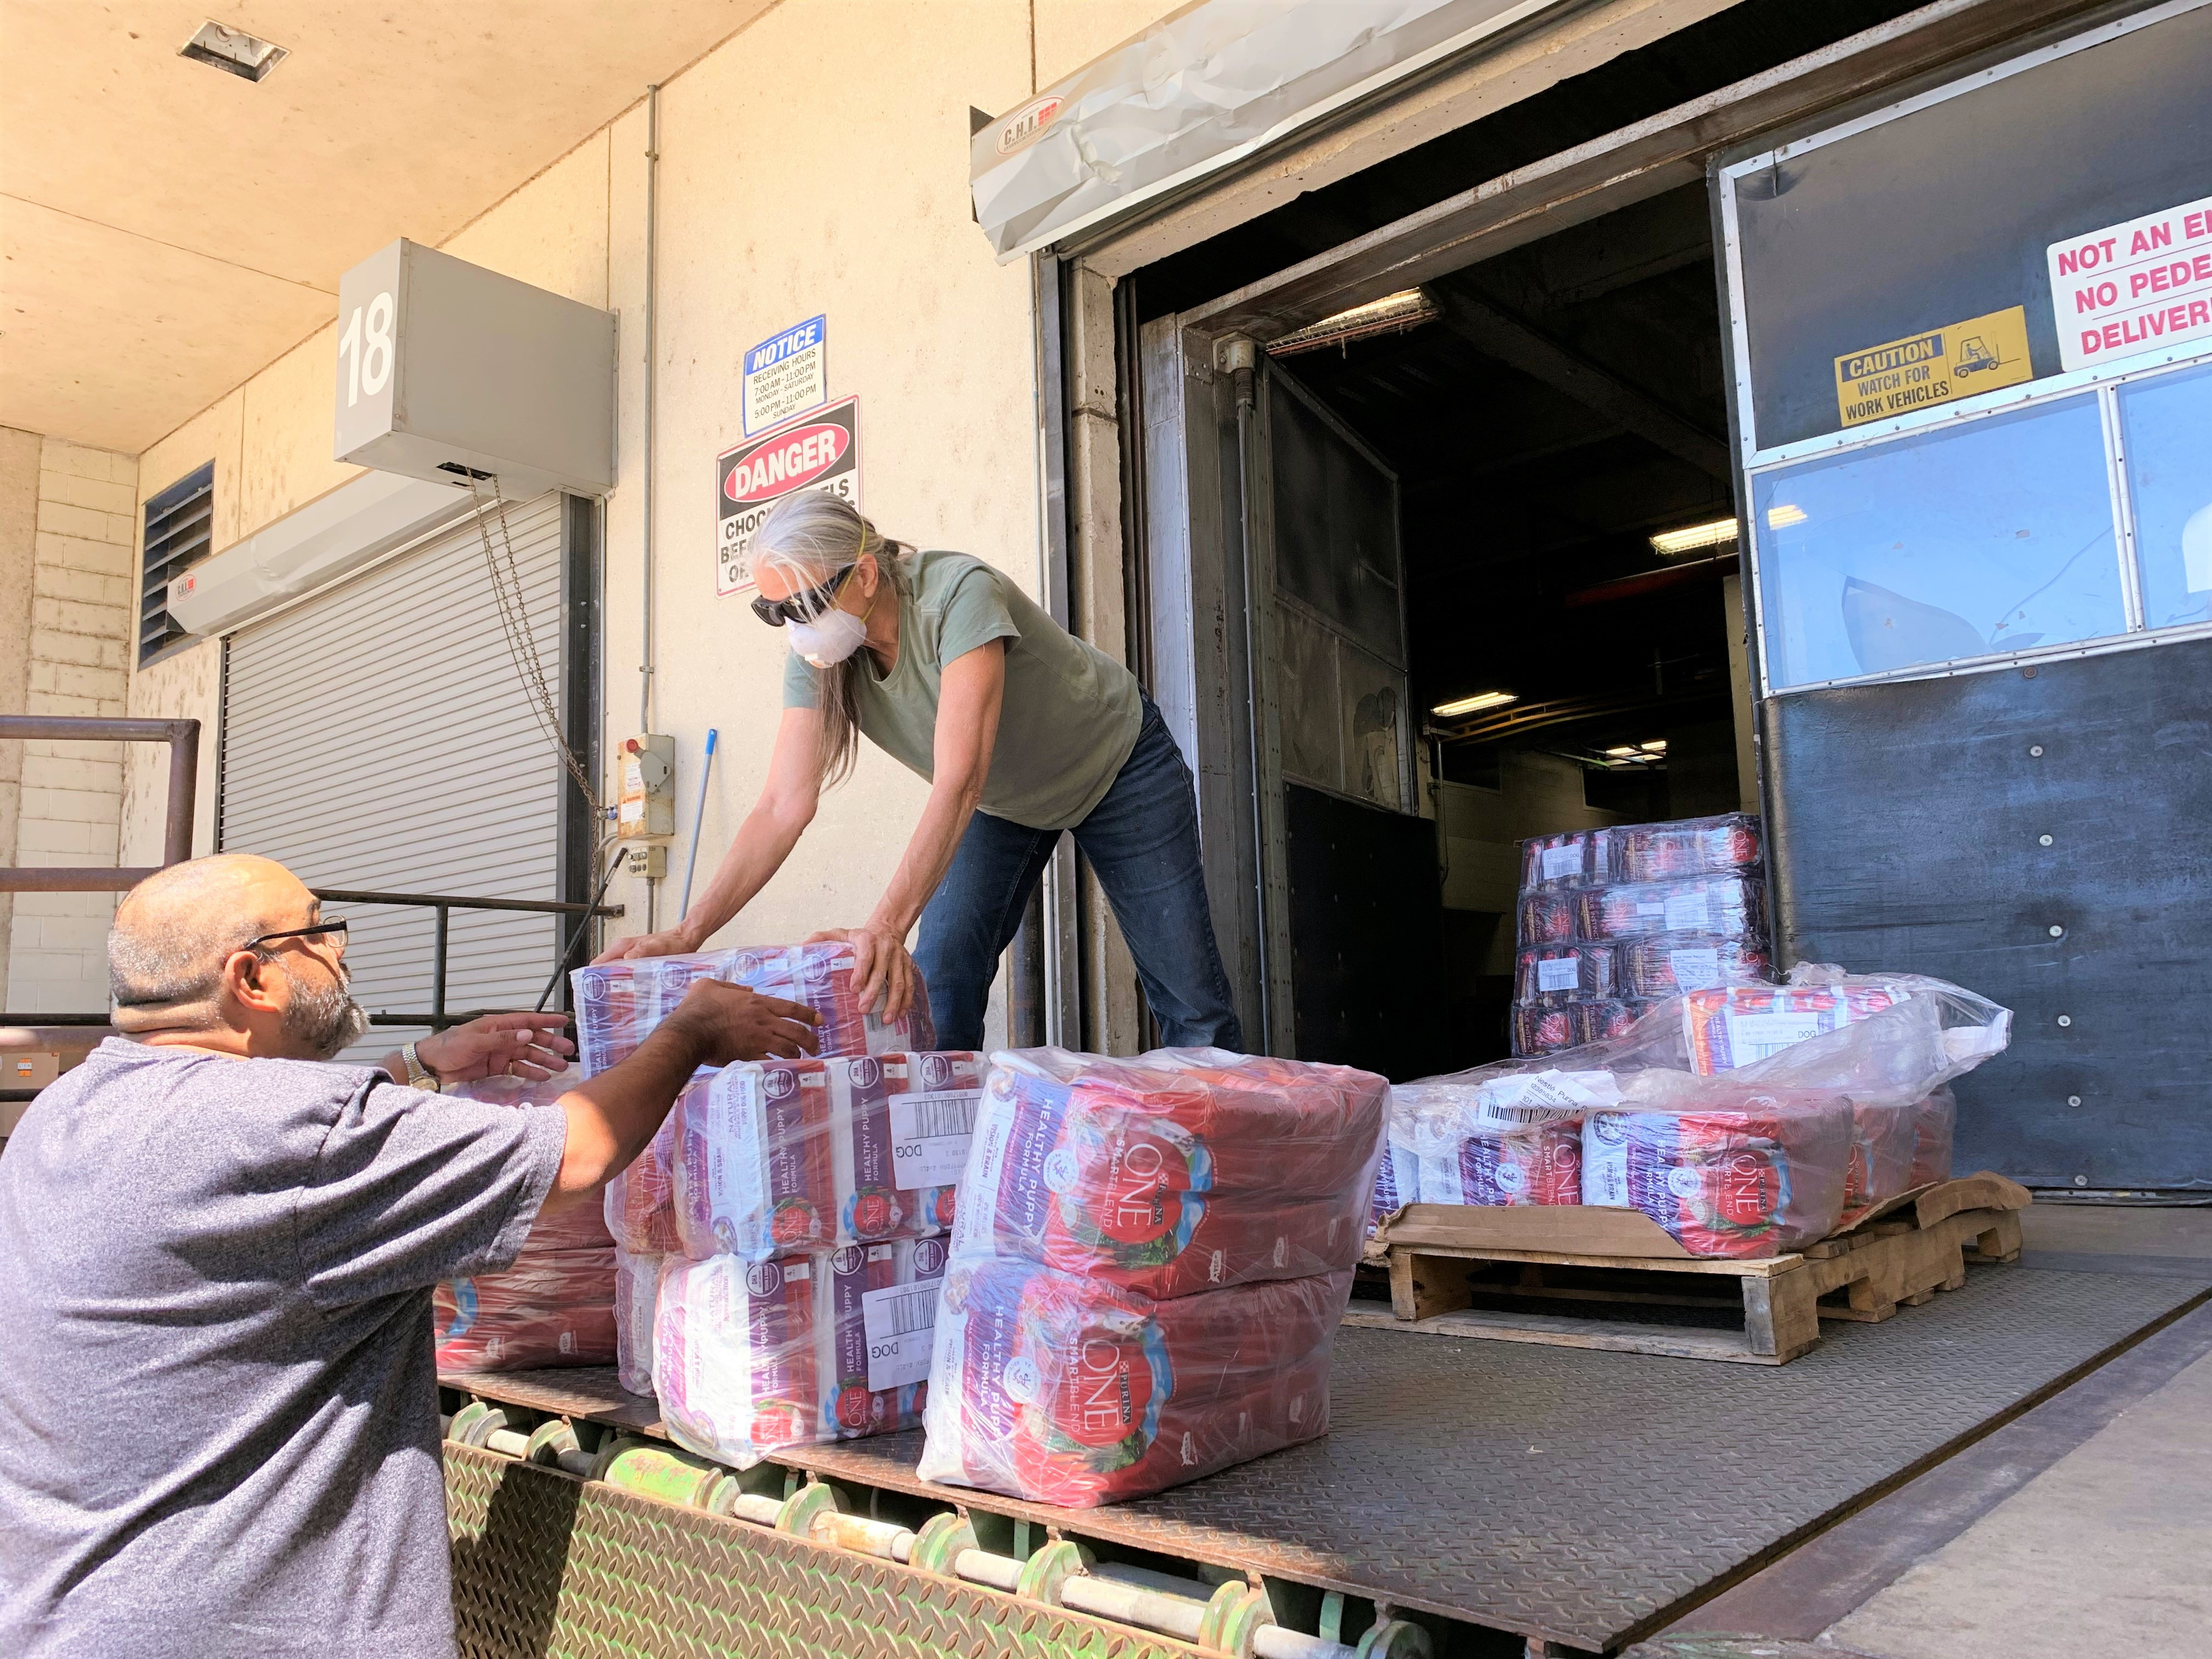 Woman and man load shrink wrapped bags of Purina ONE dog food from loading dock.